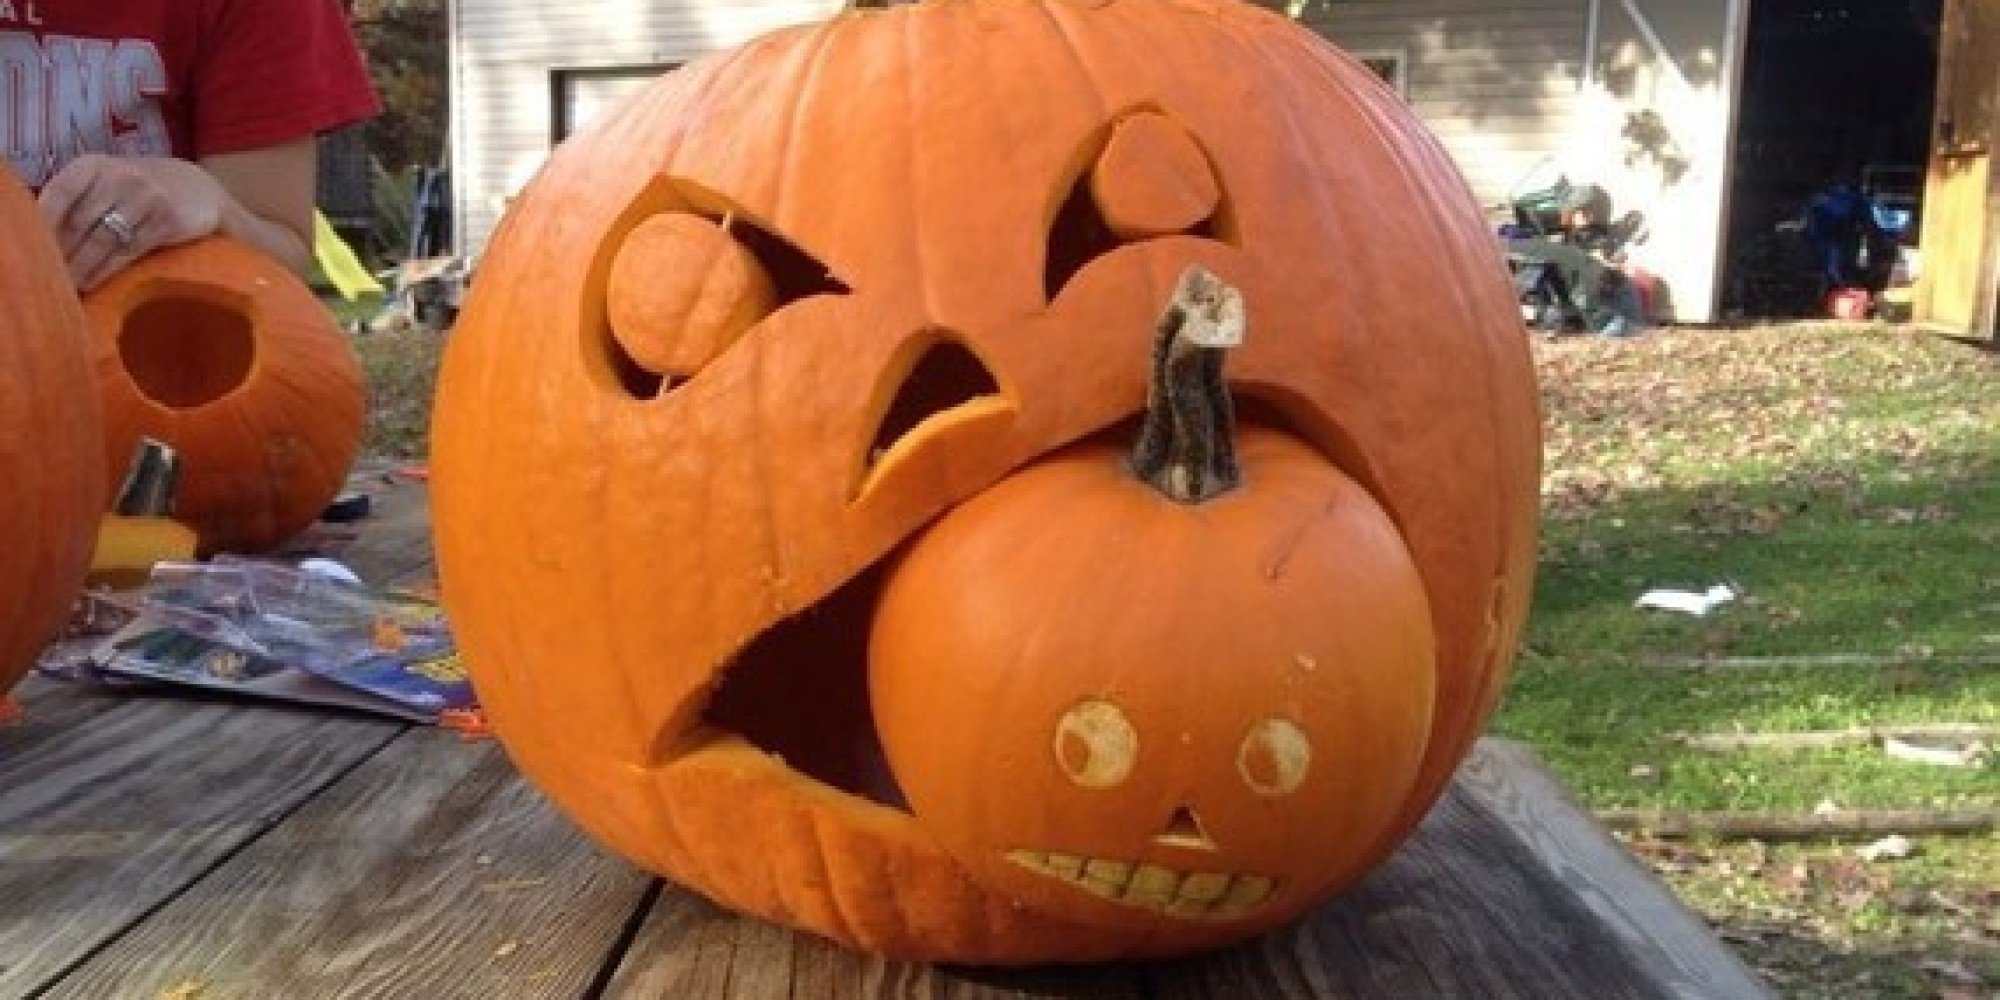 34 epic jack-o'-lantern ideas to try out this halloween | huffpost